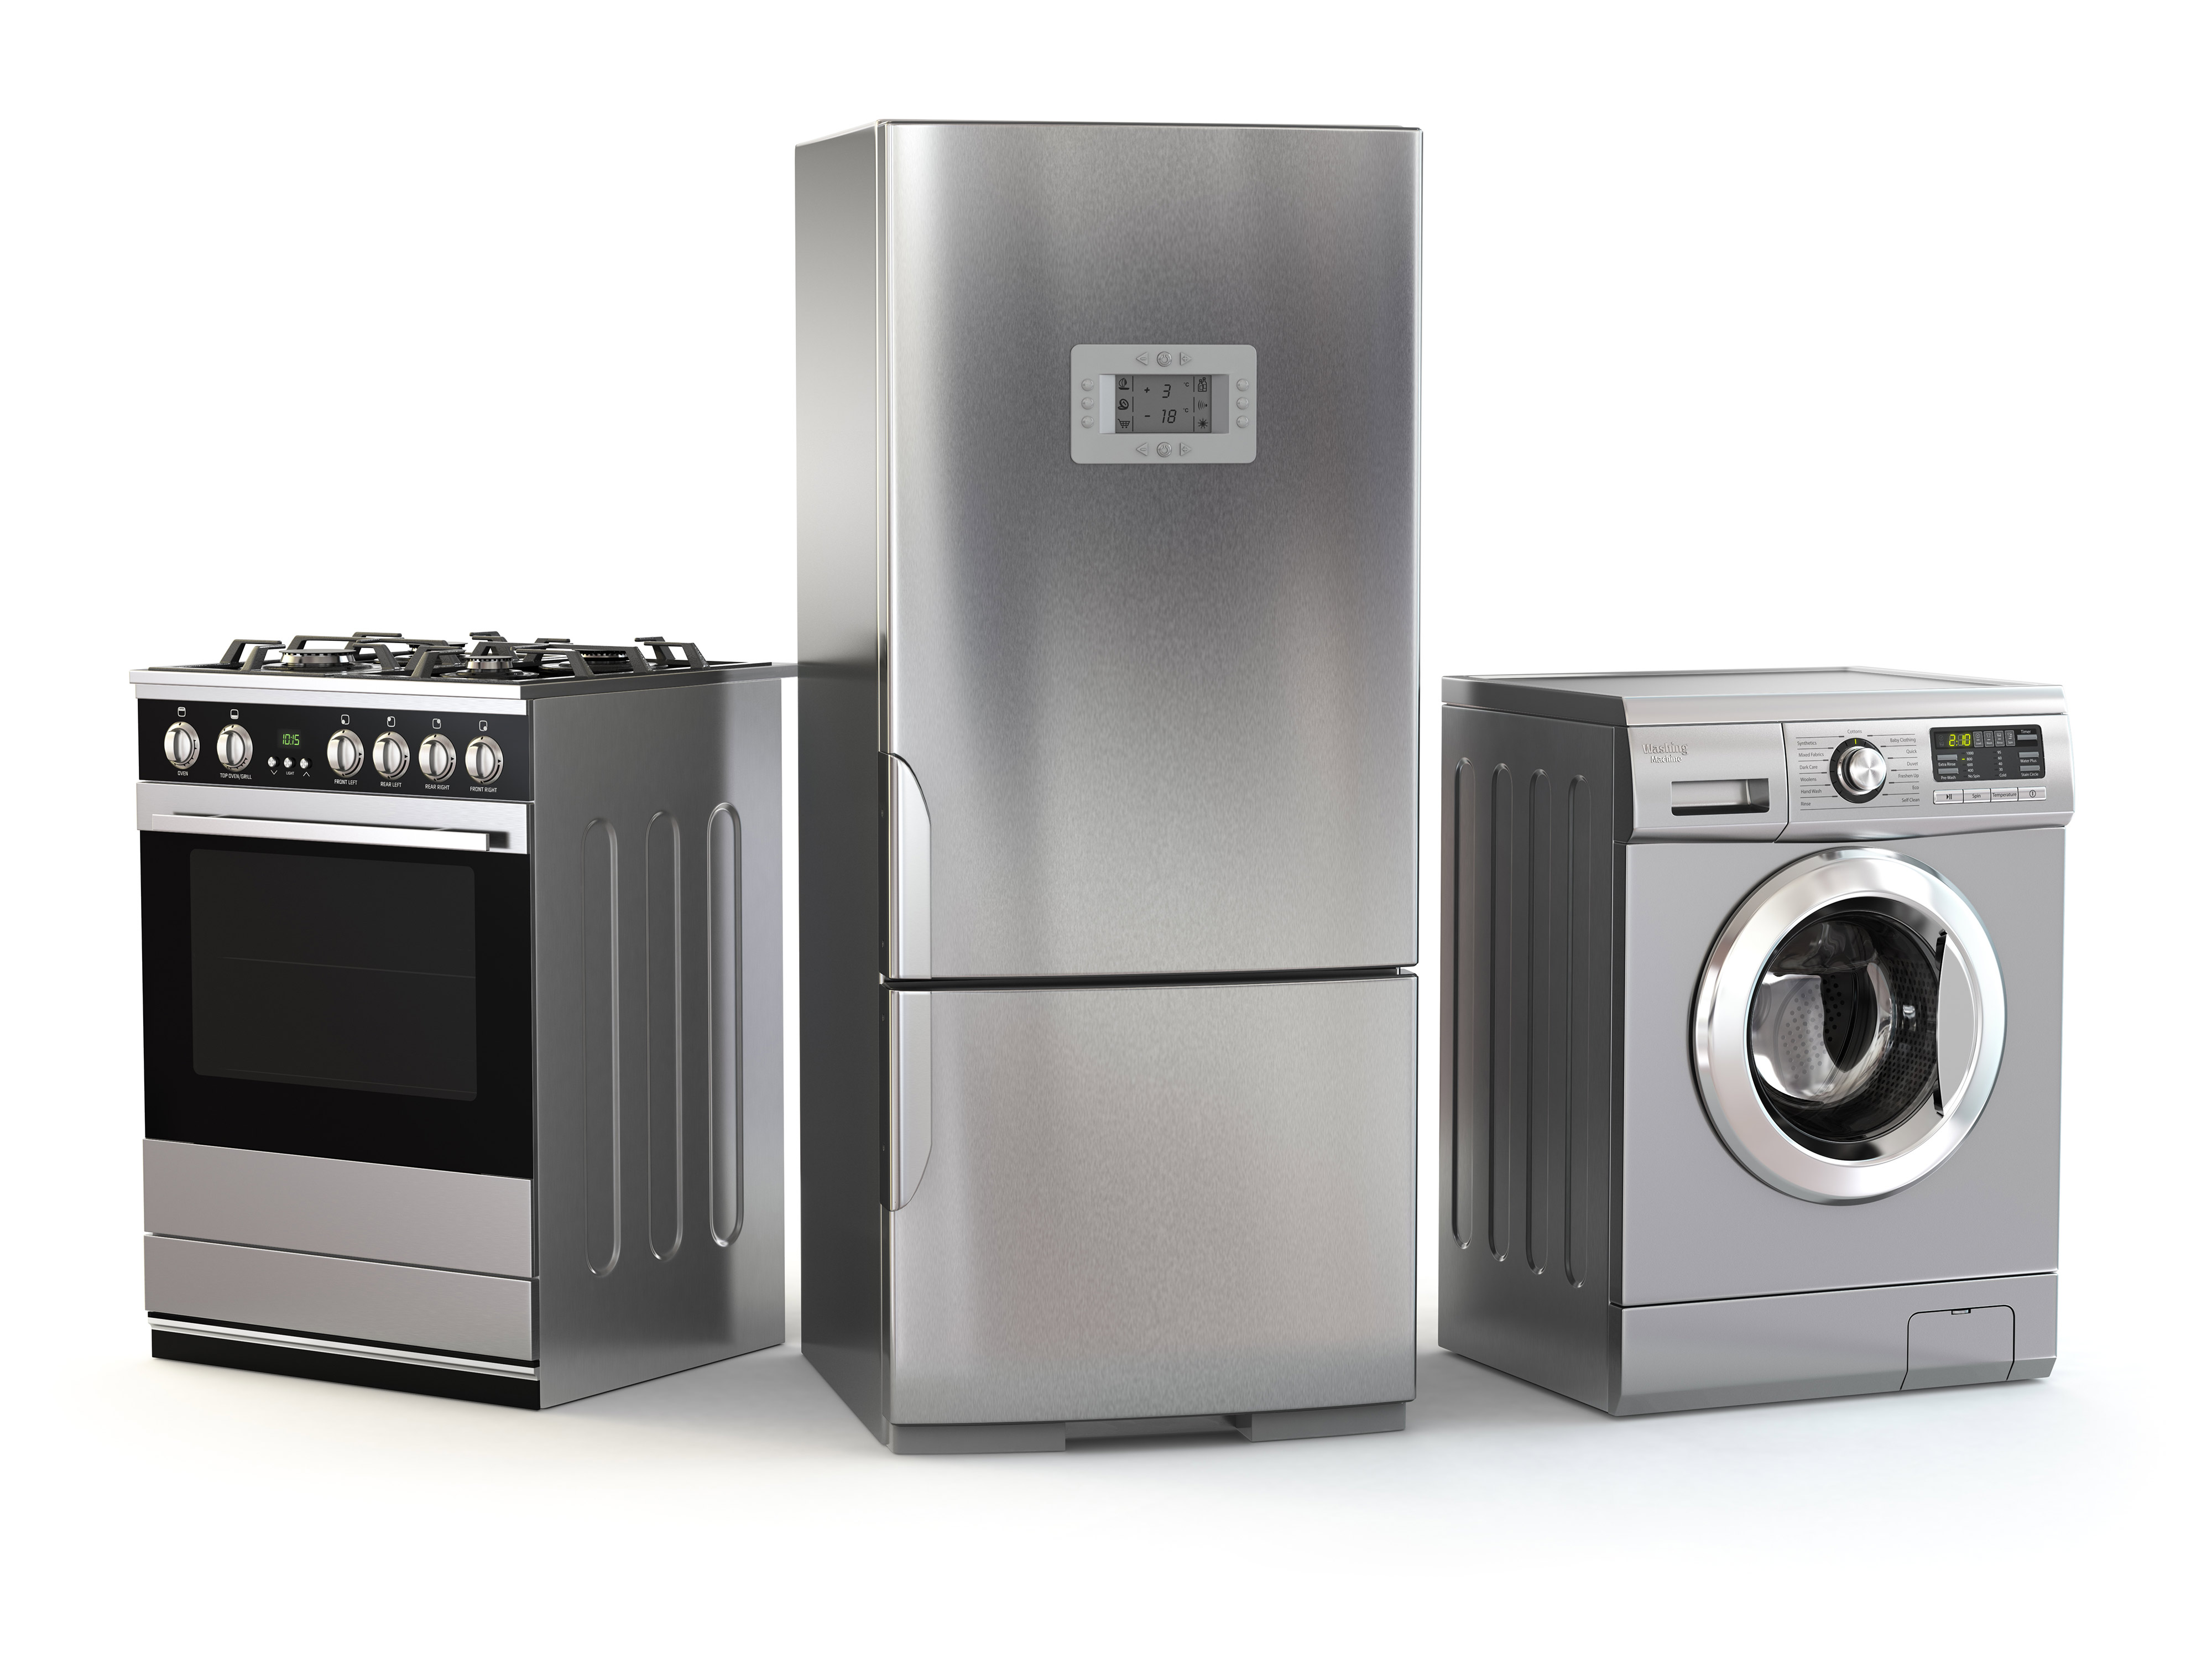 How to use US Appliance Coupons